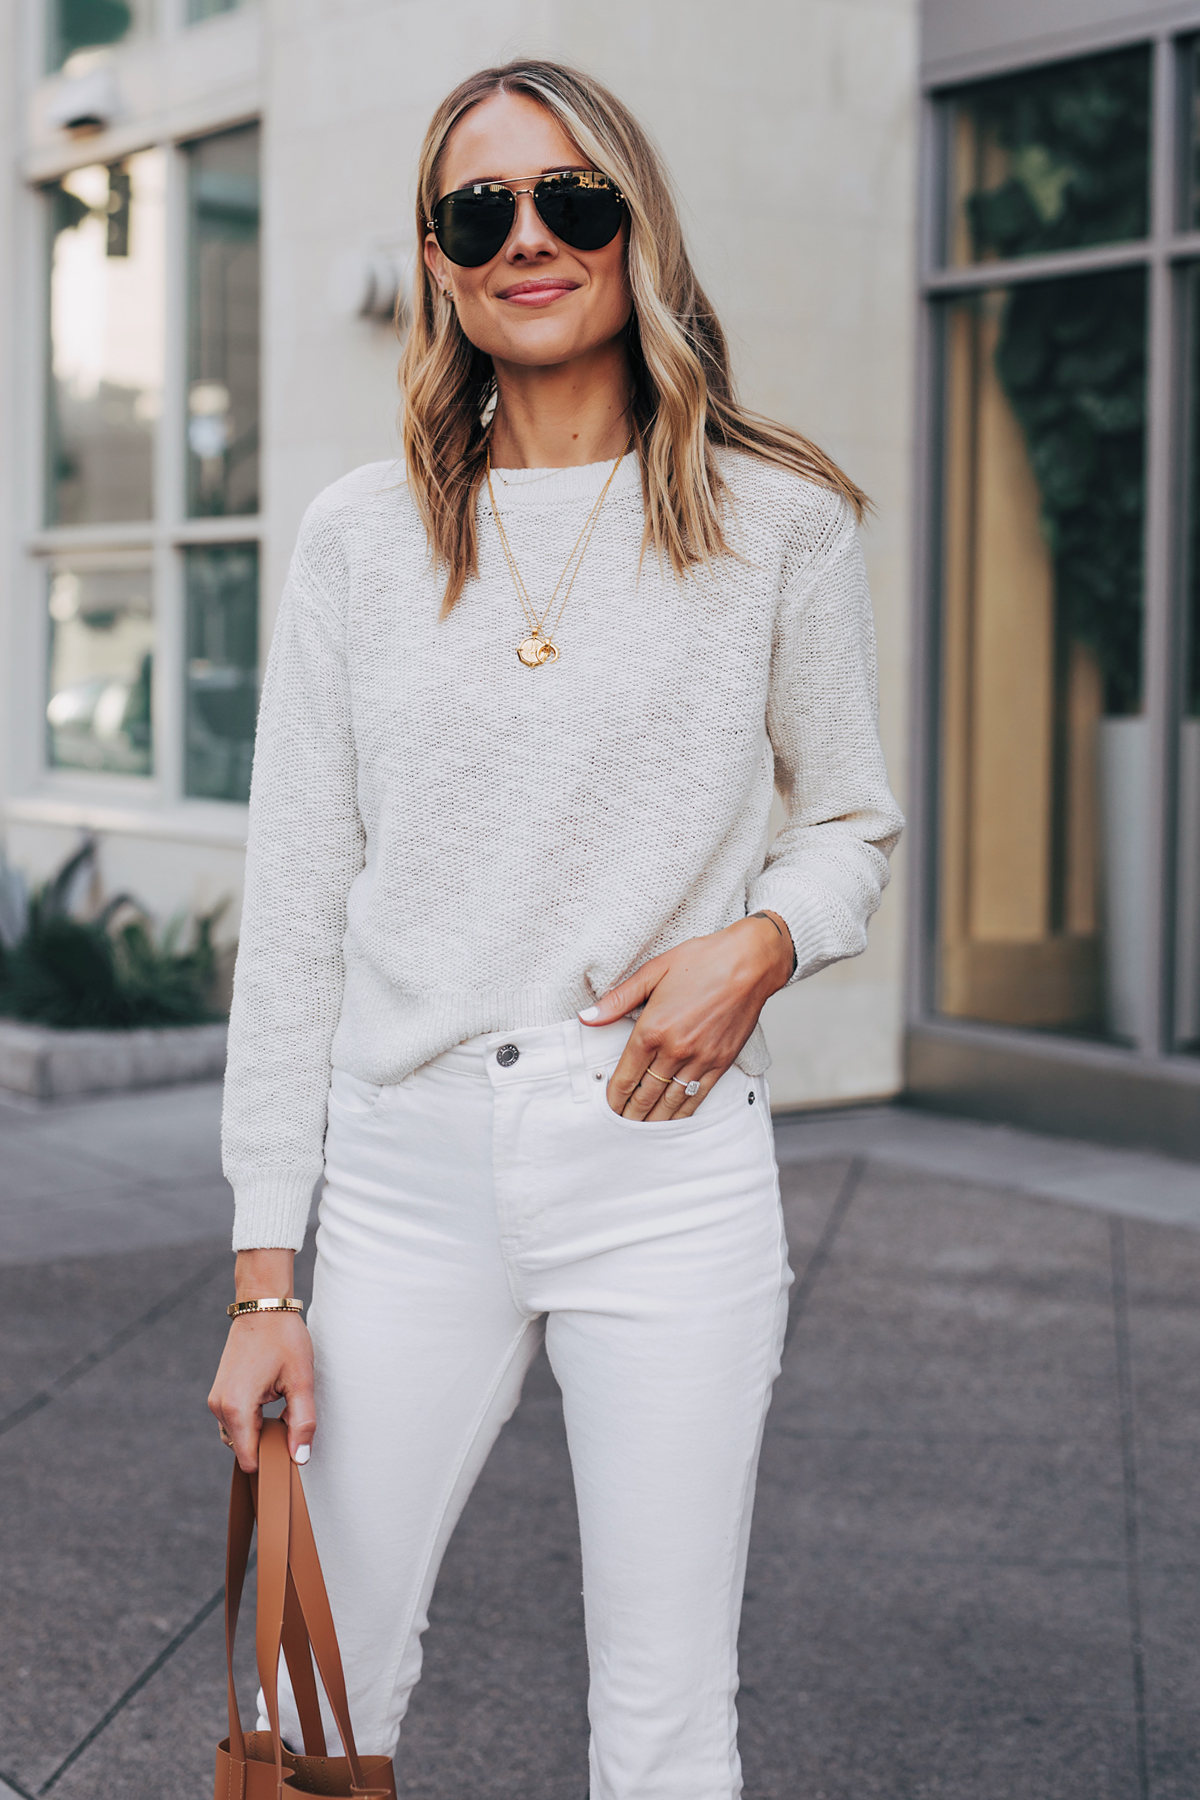 Blonde Woman Wearing Everlane Sand Cotton Linen Sweater White Jeans Gold Necklaces Fashion Jackson San Diego Fashion Blogger Street Style